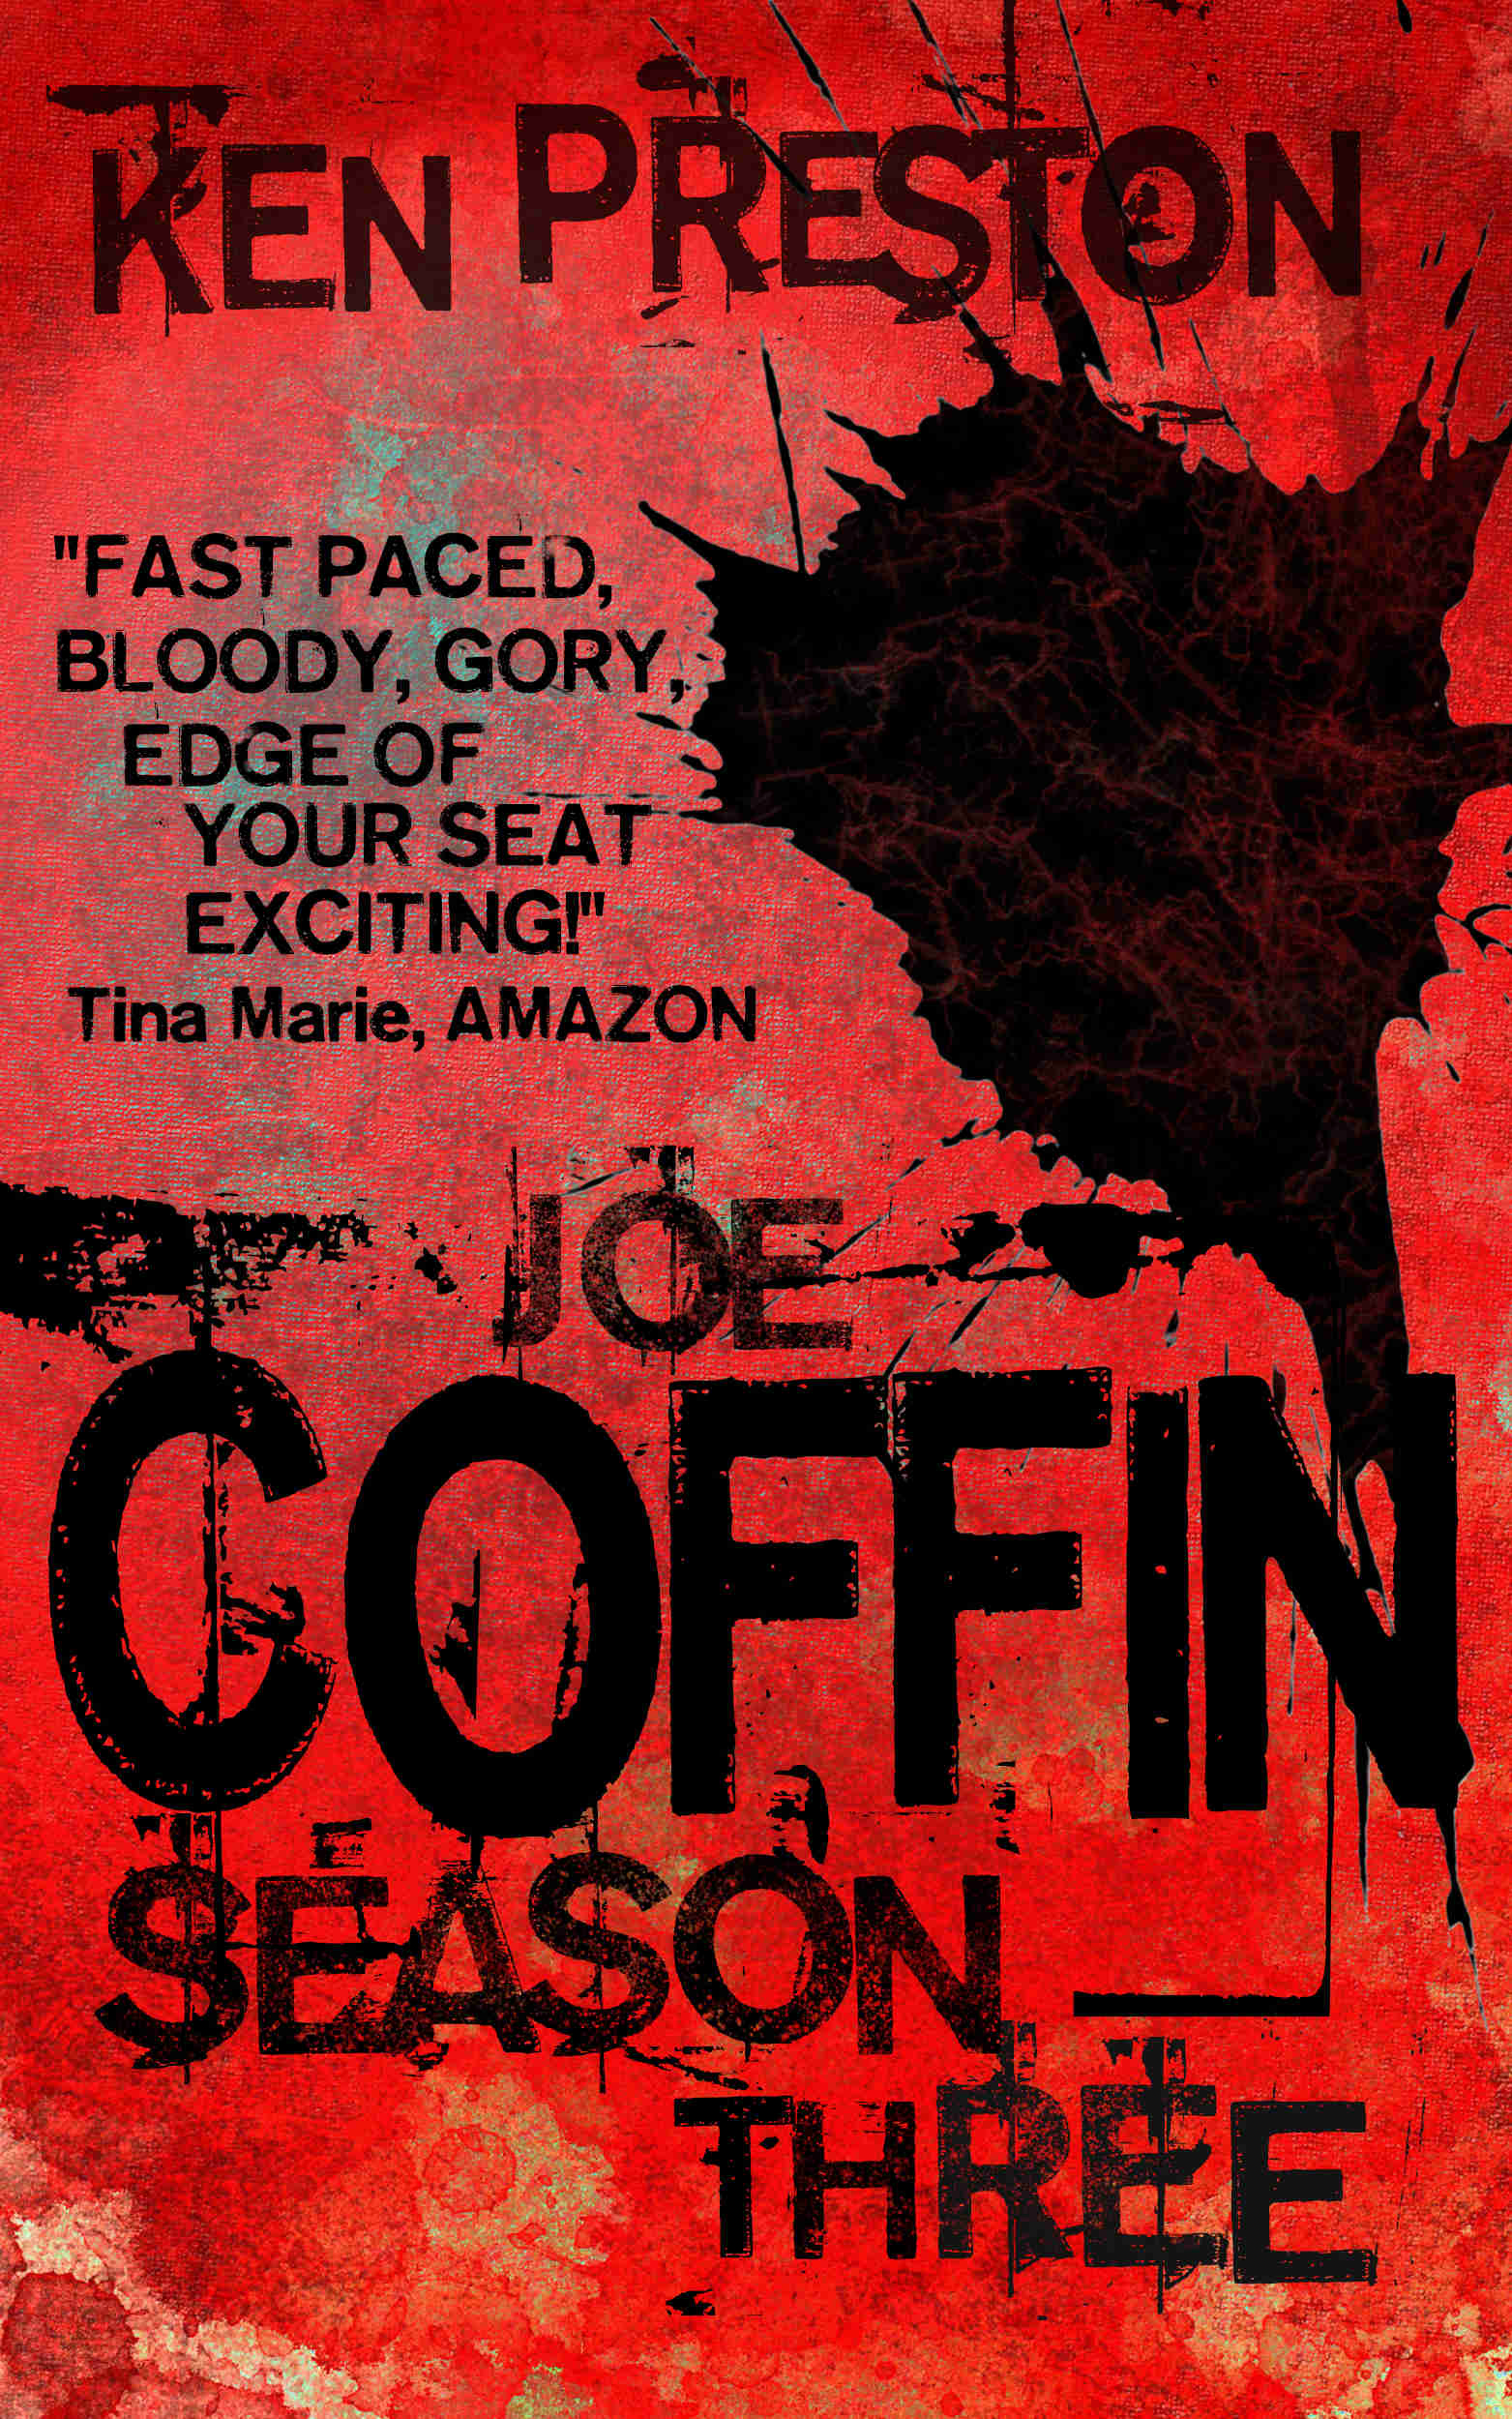 Joe Coffin Season Three book cover